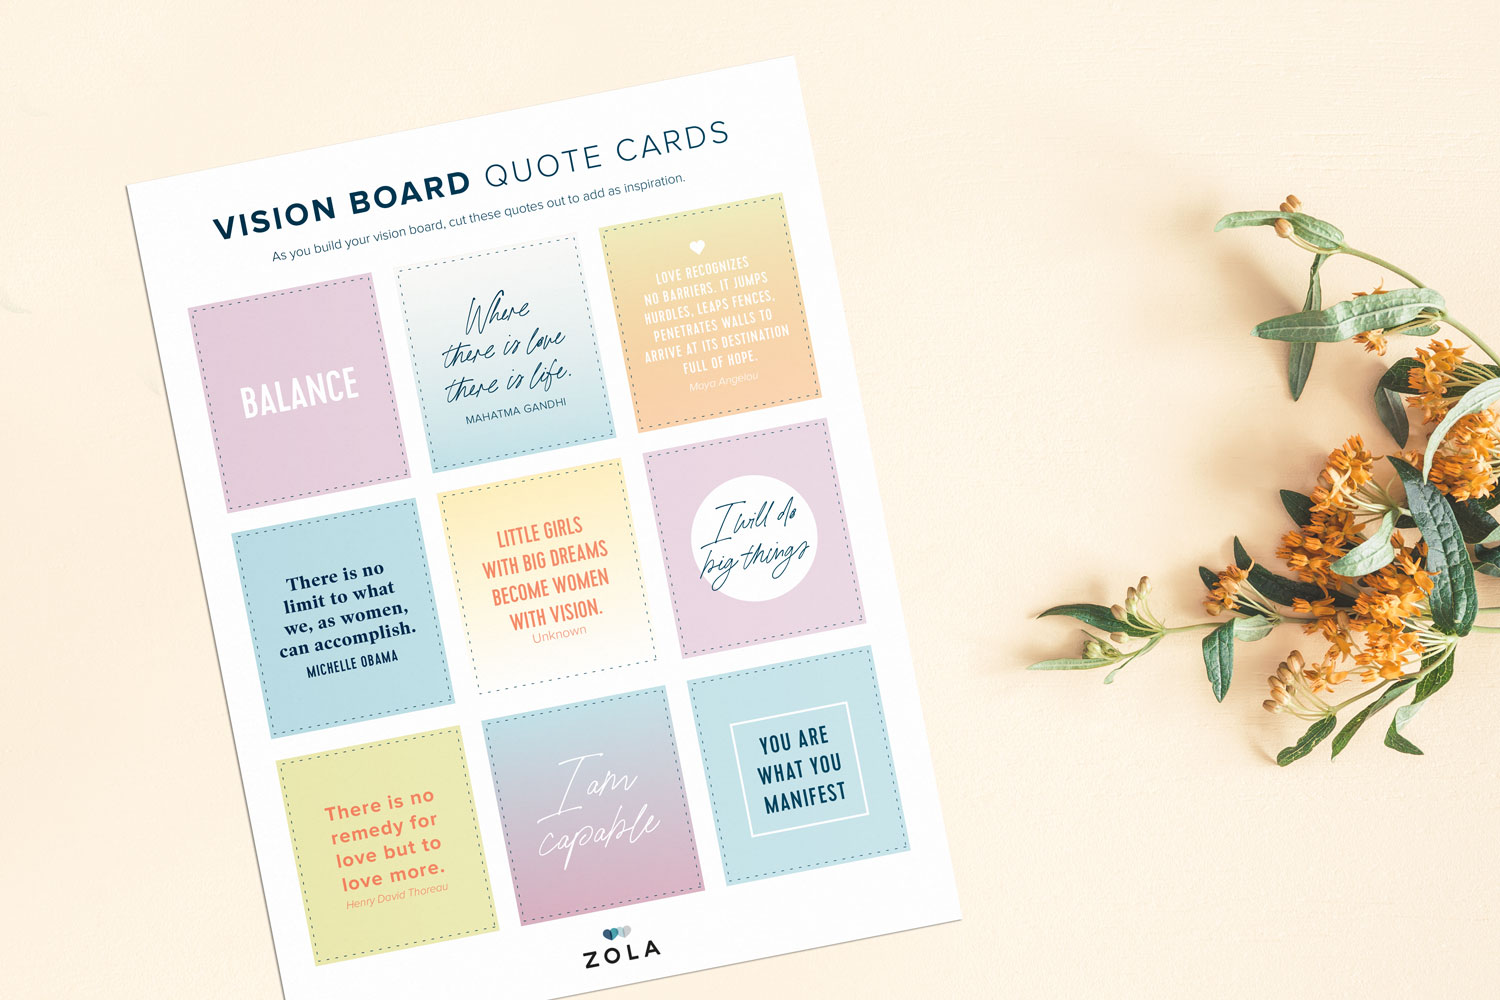 create-a-vision-board-for-your-big-day-mockup-2